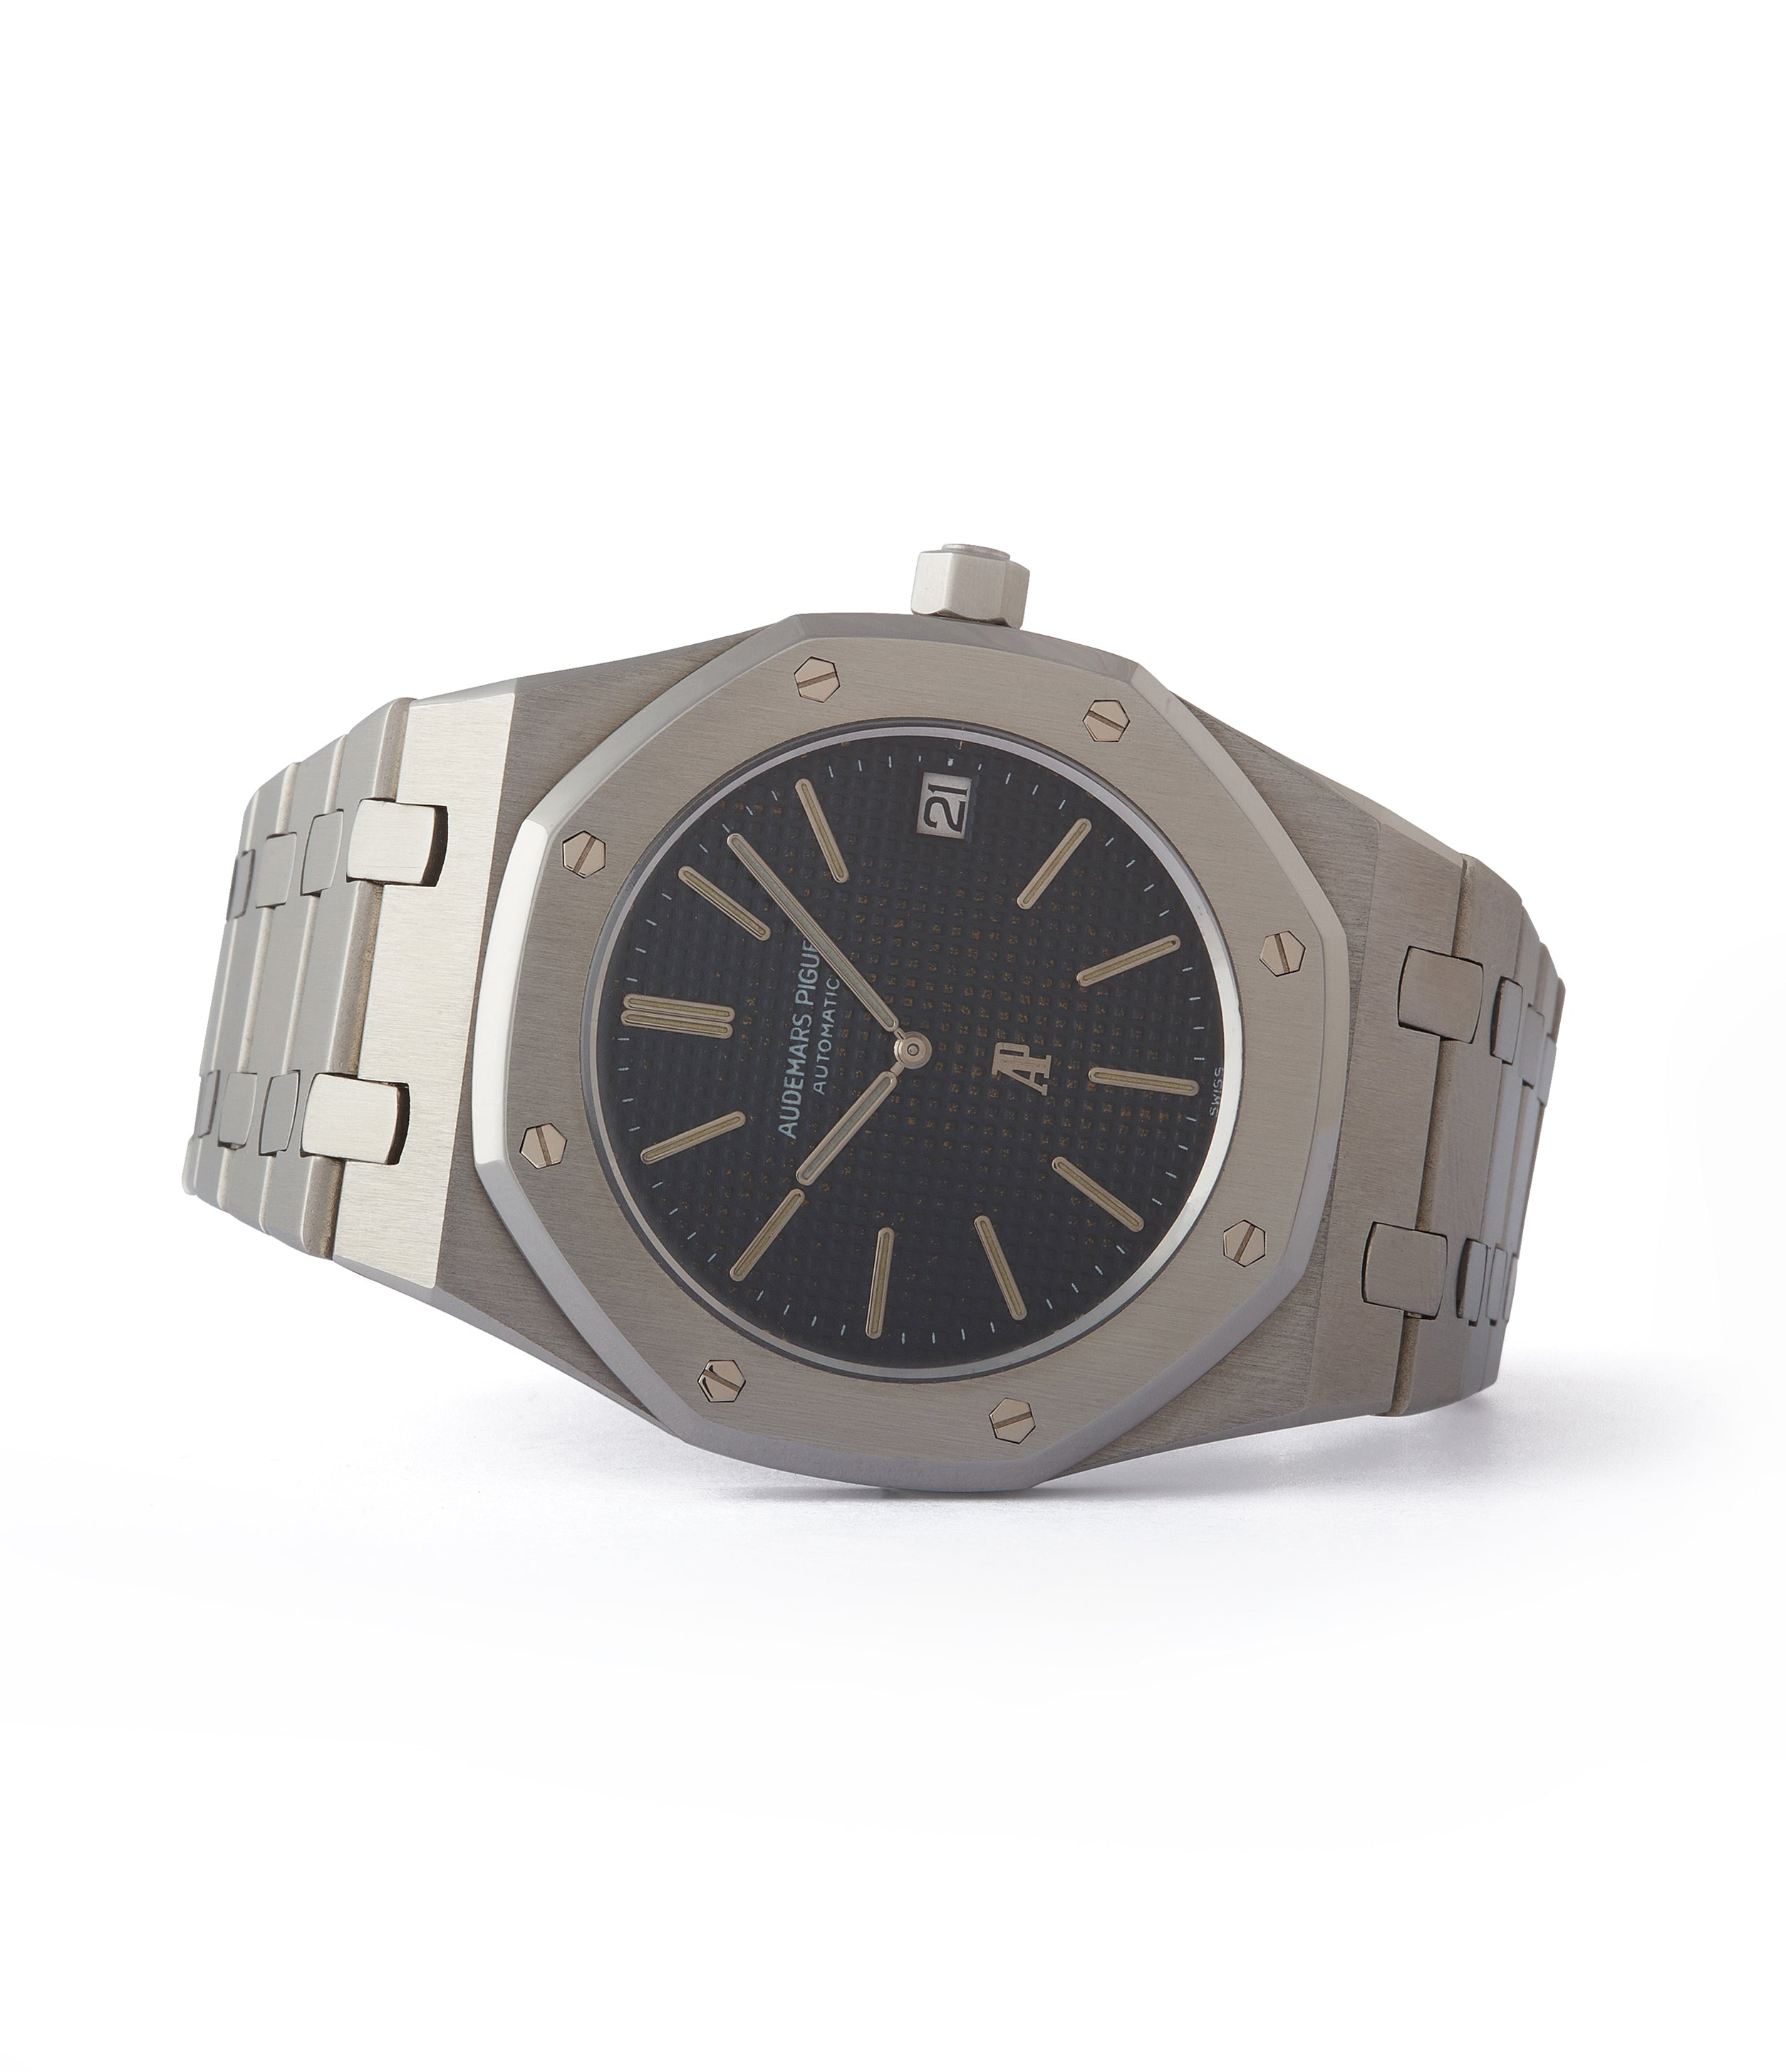 buy vintage Audemars Piguet Royal Oak A-series 5402 steel sport watch for sale online at A Collected Man London UK specialist of rare watches